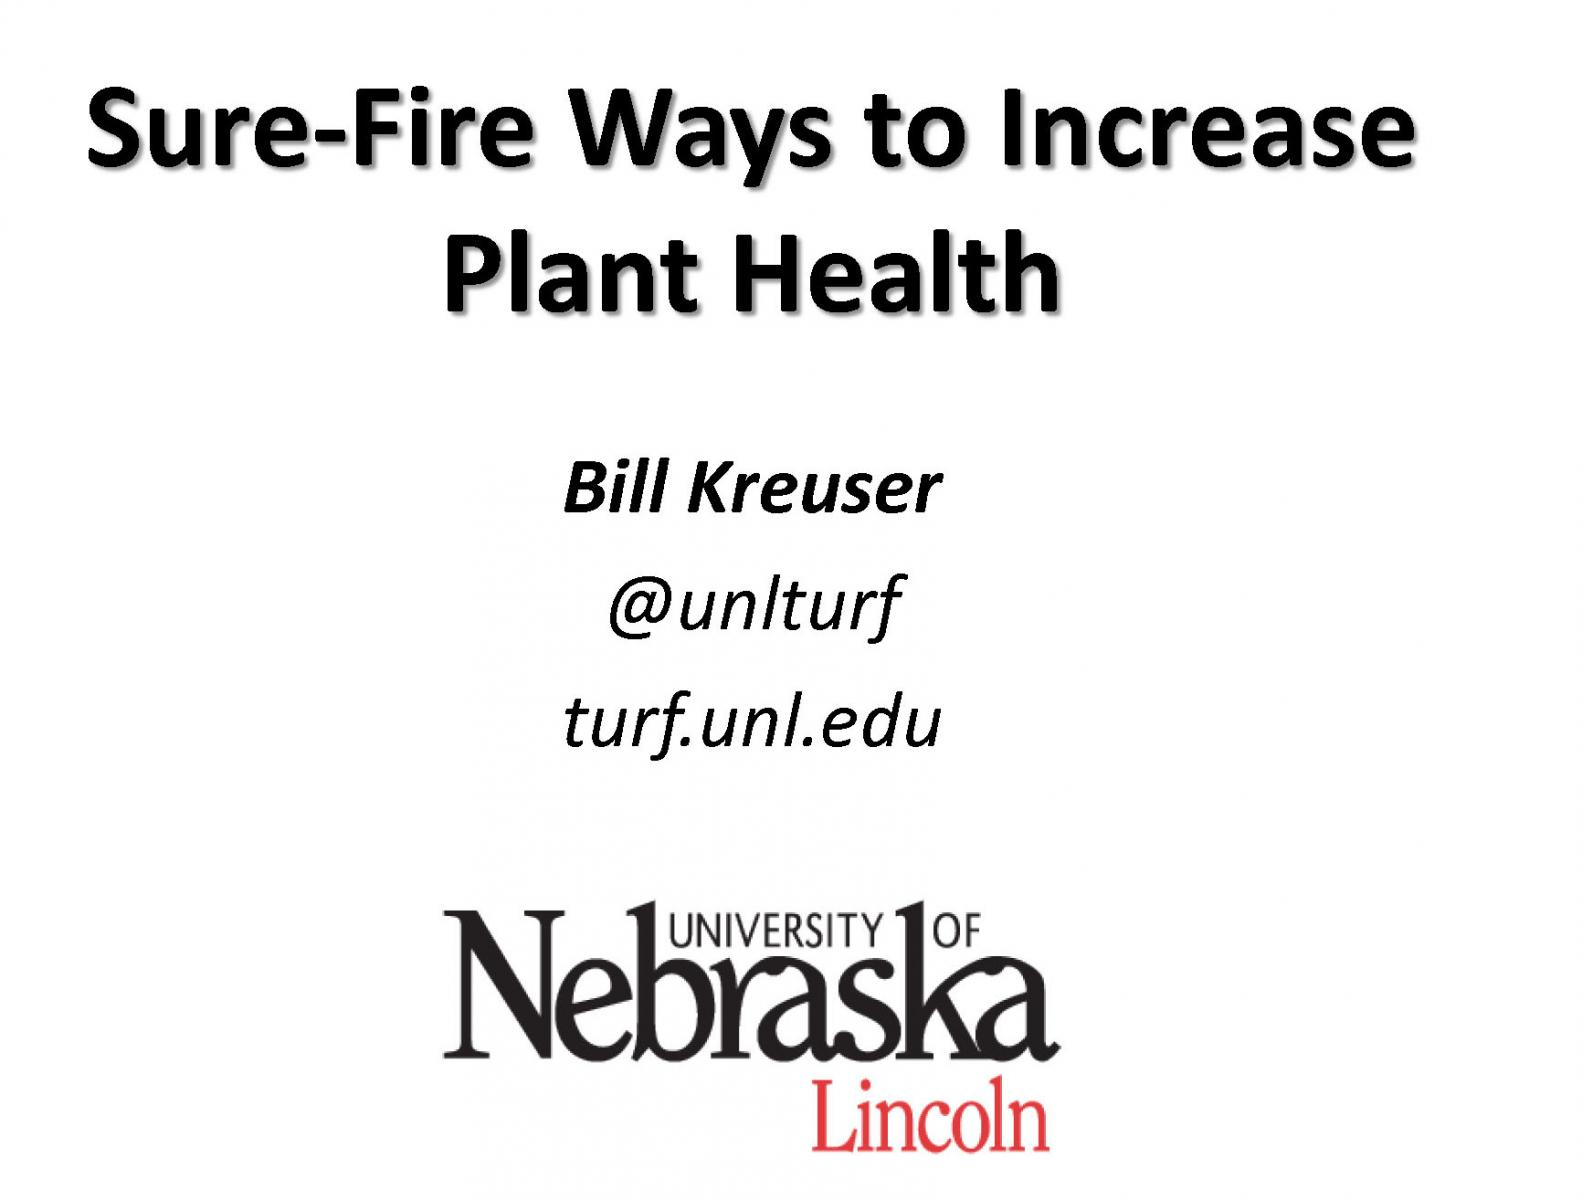 Sure-Fire Ways to Increase Plant Health